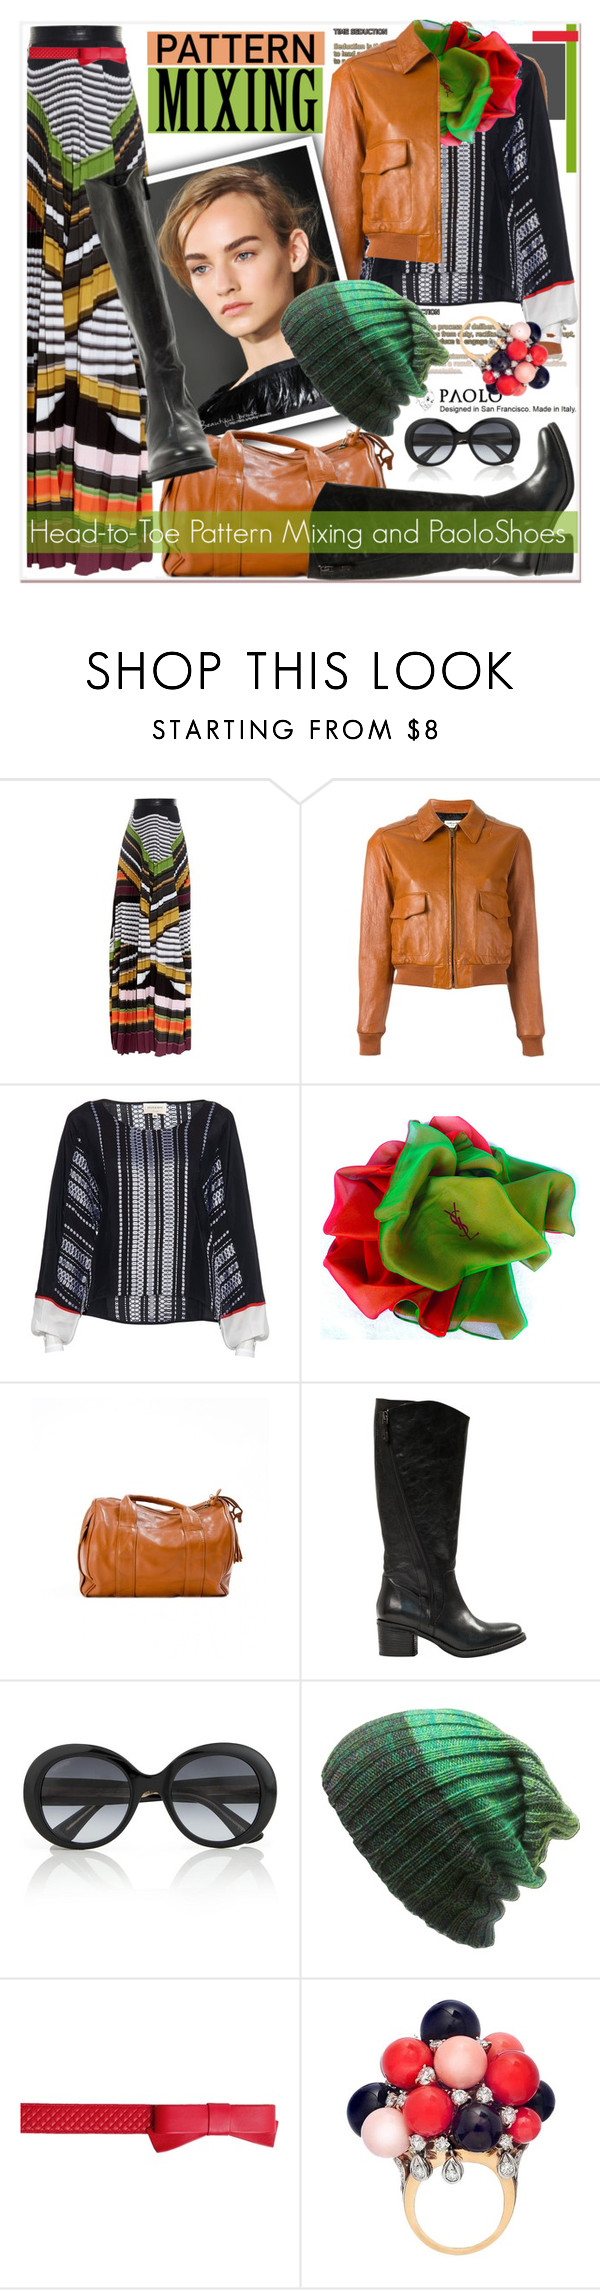 """""""Head-to-Toe Pattern Mixing and PaoloShoes"""" by spenderellastyle ❤ liked on Polyvore featuring Mary Katrantzou, Yves Saint Laurent, Gucci and Boutique Moschino"""